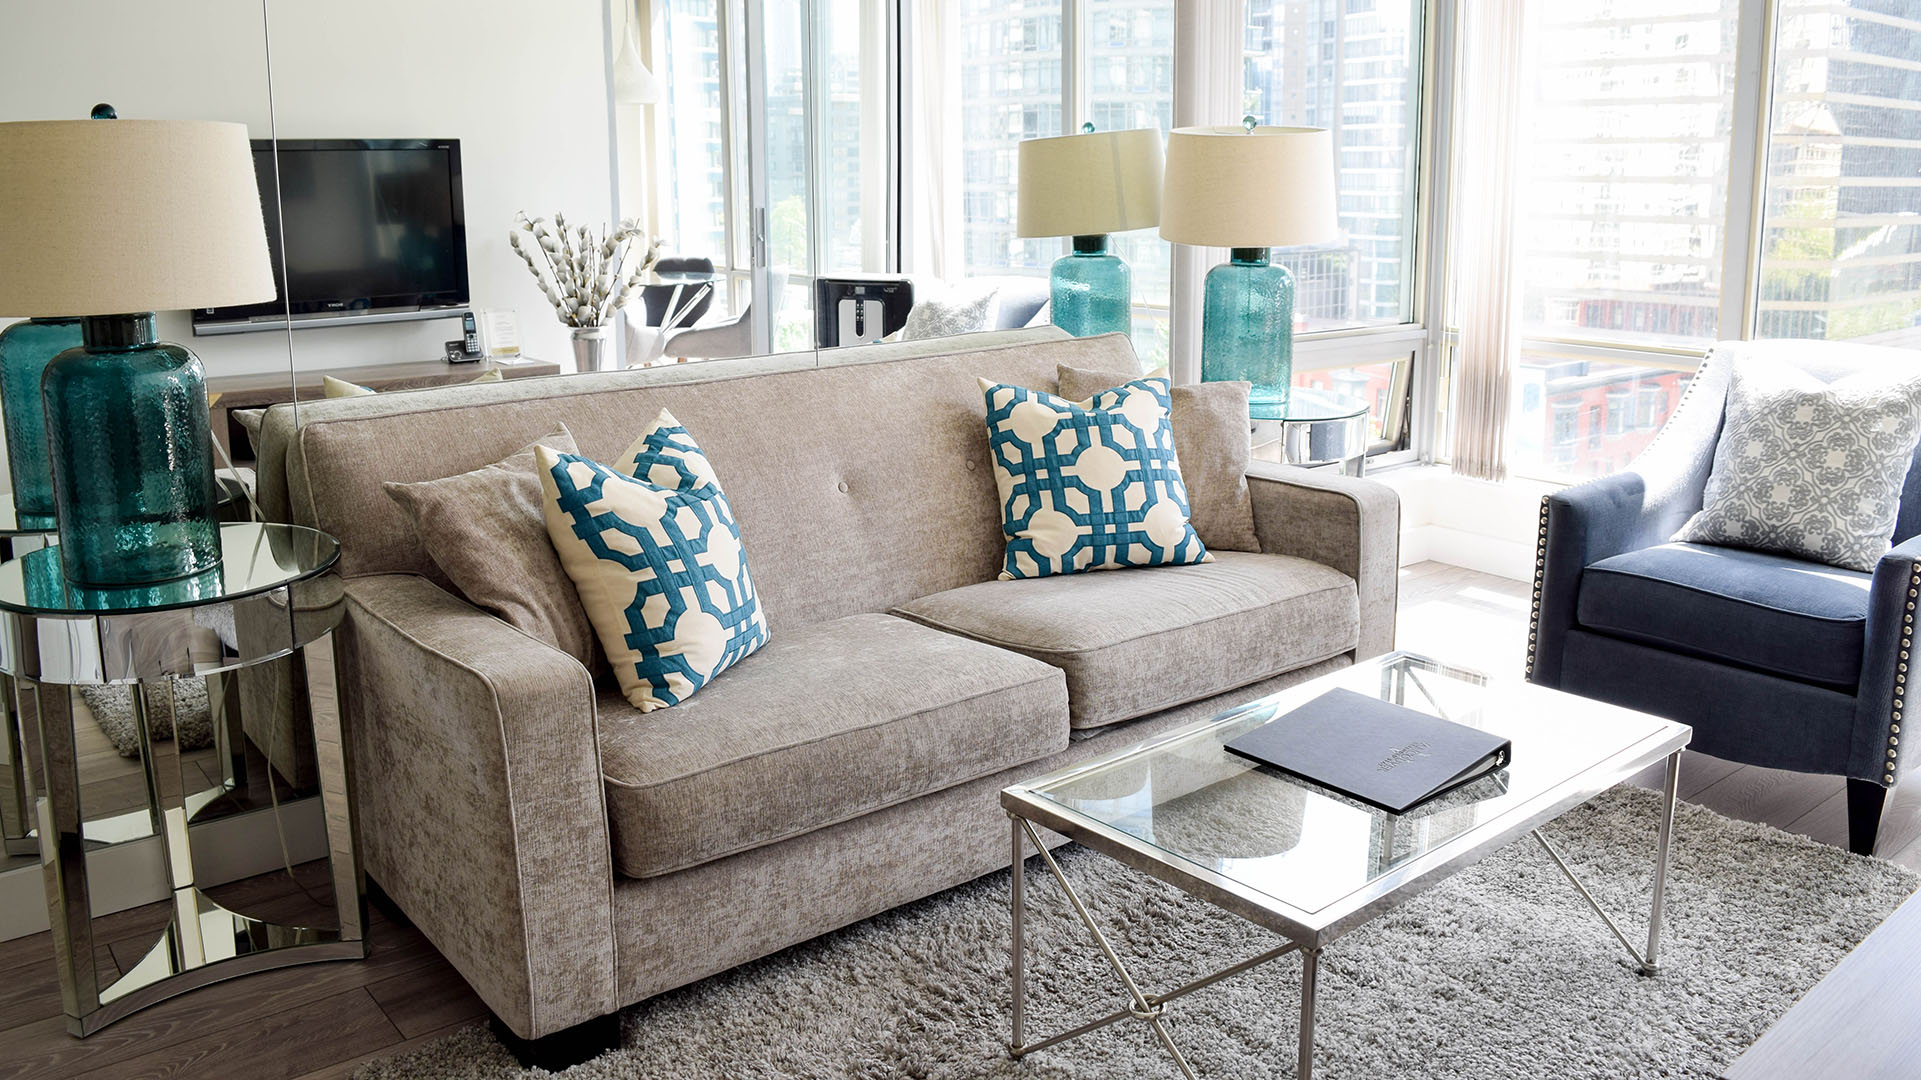 Photo of fully furnished apartment #1004 at The Residences on Georgia, 1288 West Georgia Street, Vancouver, BC